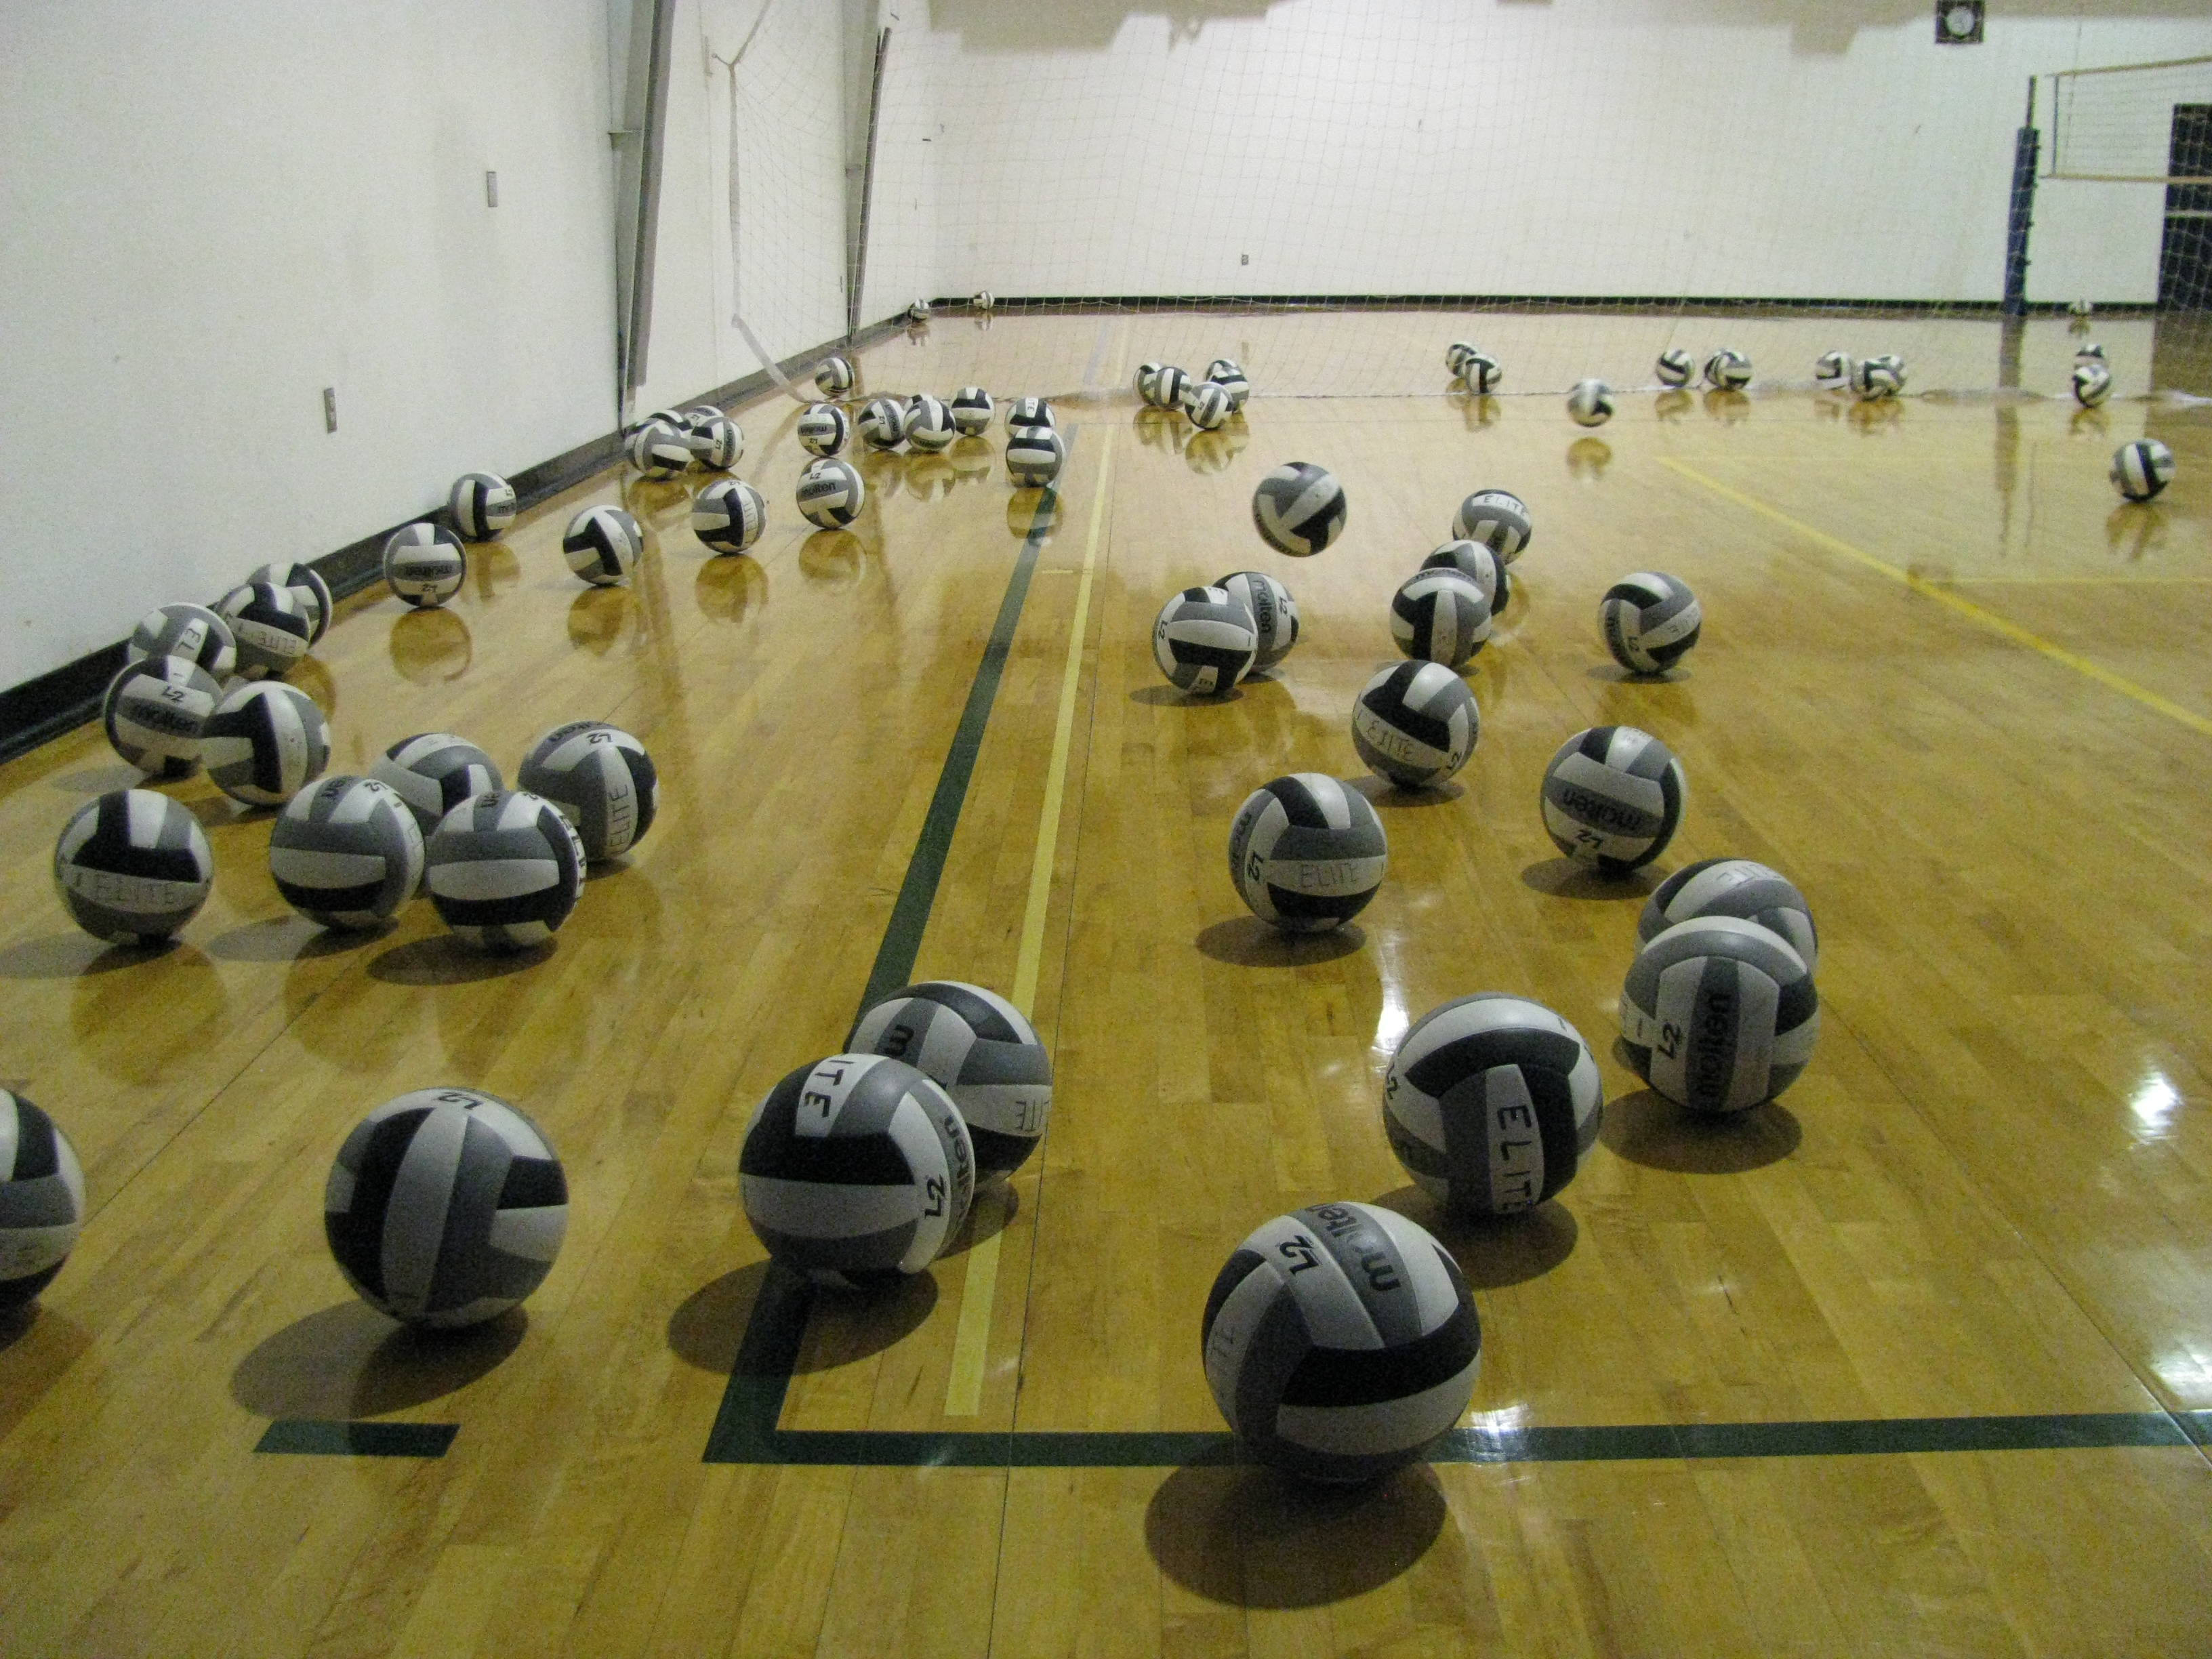 Volleyballs on the court